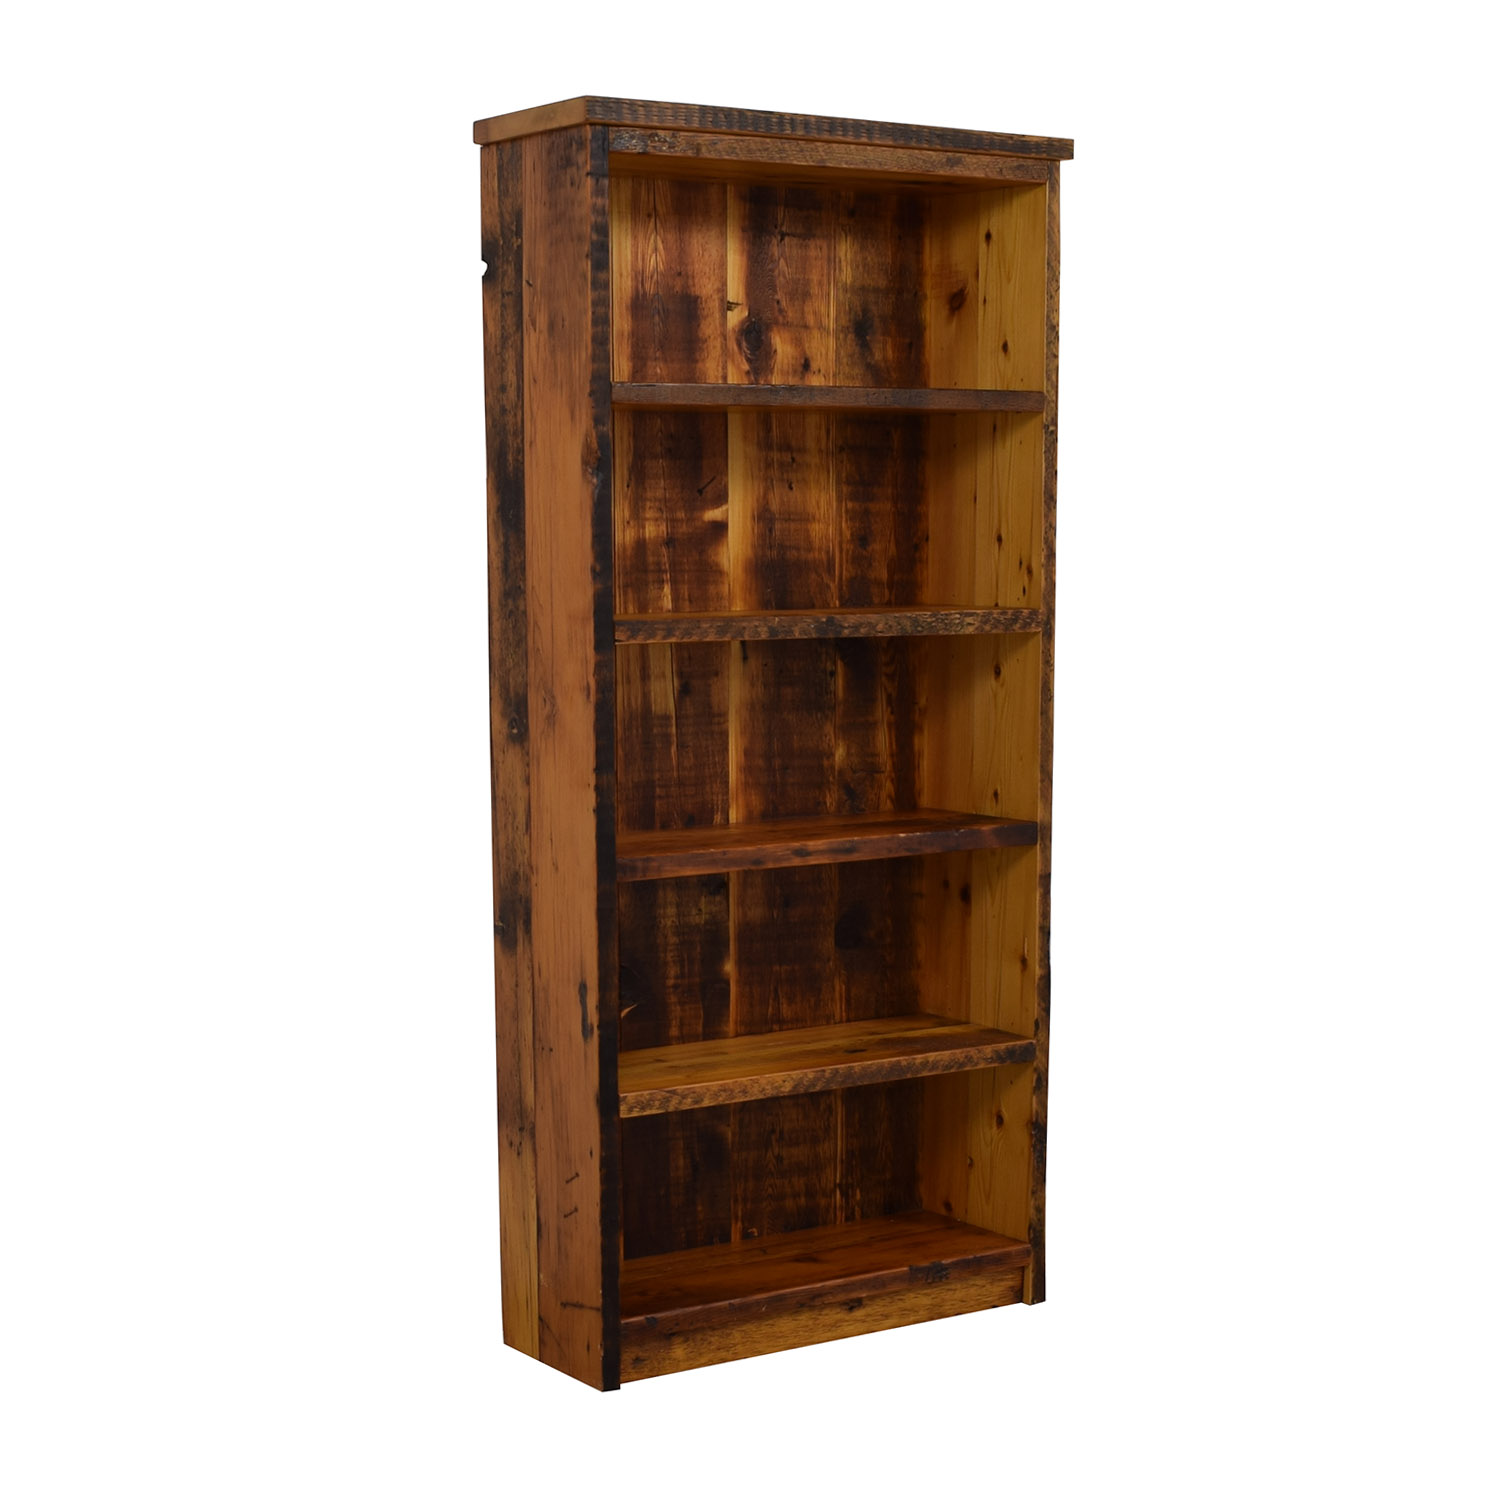 Olde Good Things Olde Good Things Reclaimed Pine Bookcase for sale